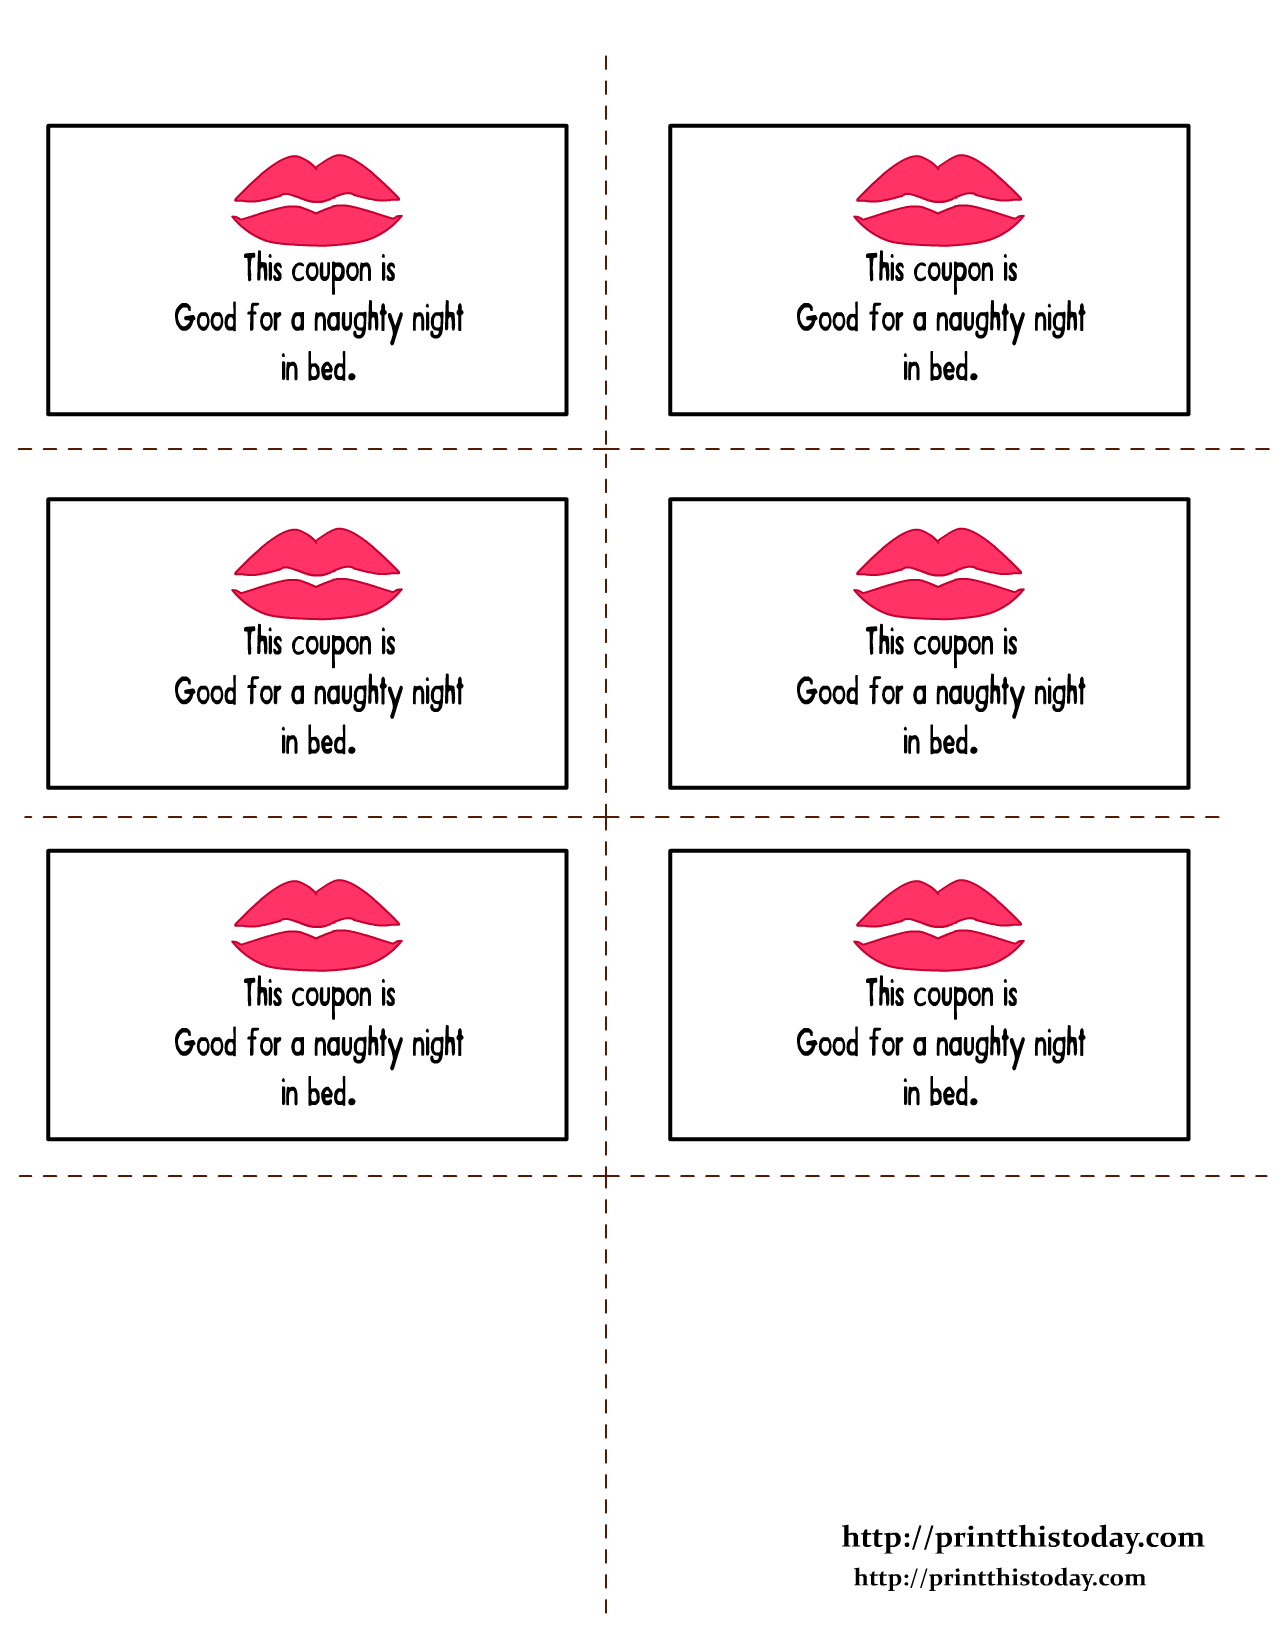 Romantic Love Coupon Printable Romantic Love Coupons Print This Today Love Coupons Coupon Books For Boyfriend Coupons For Boyfriend